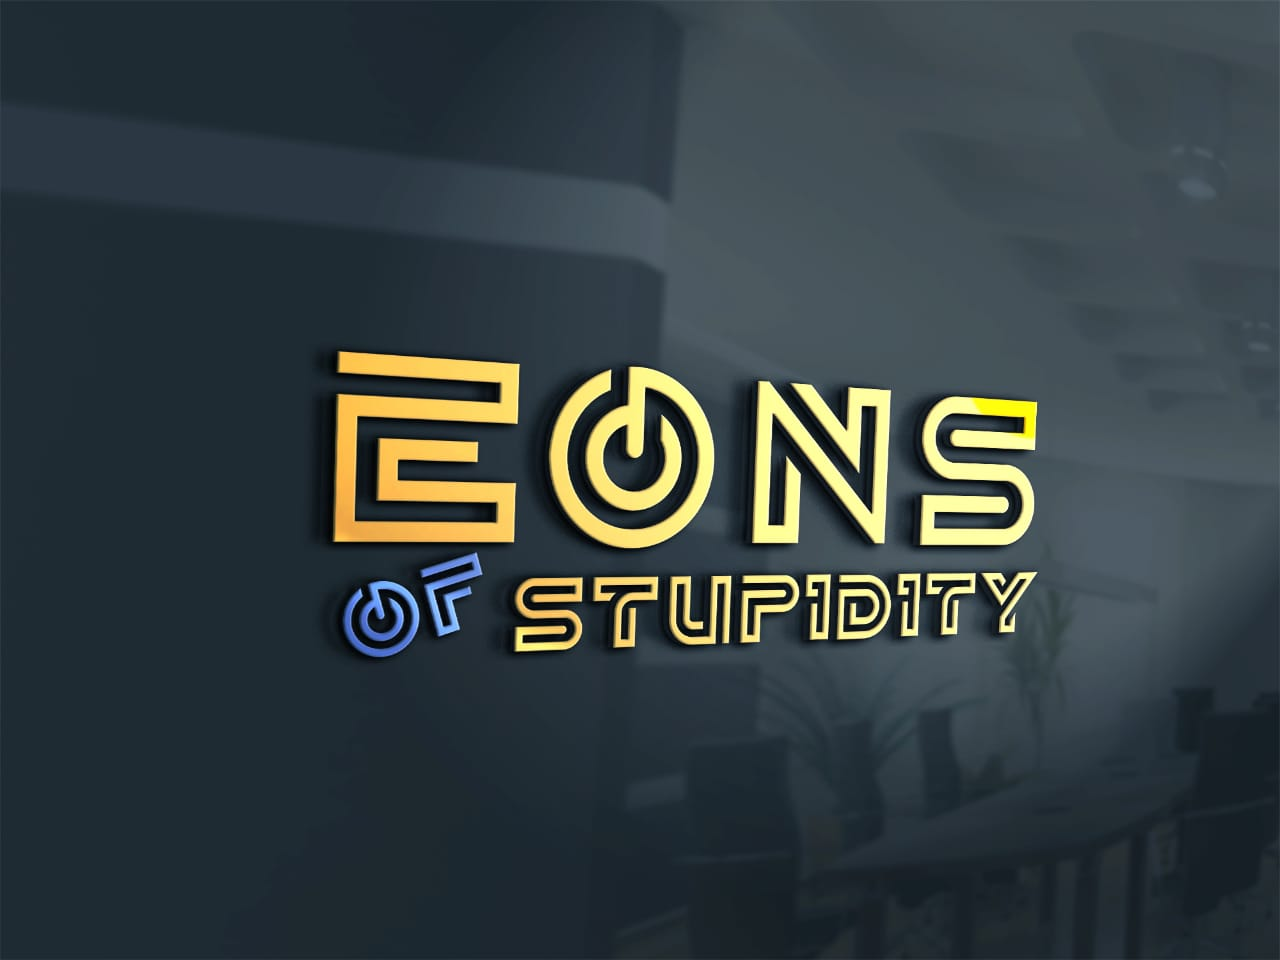 Eons of Stupidity - Practicing Stupidity in a more professional manner.